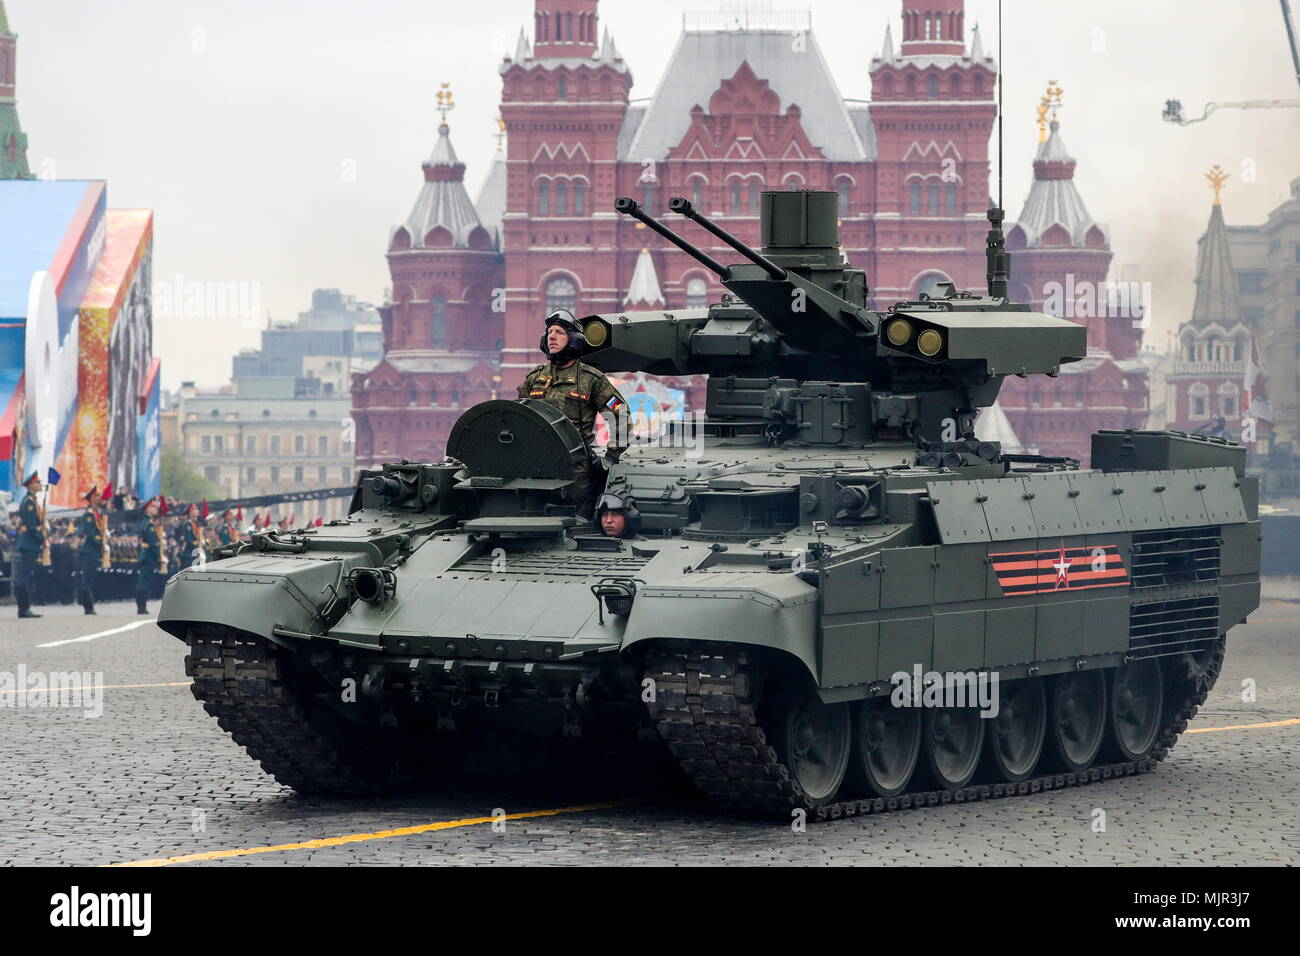 Moscow, Russia. 06th May, 2018. A BMPT Terminator-2 armoured fighting vehicle seen in Moscow's Red Square during a dress rehearsal of the upcoming 9 May military parade marking the 73rd anniversary of the victory in the Great Patriotic War, the Eastern Front of World War II. Sergei Bobylev/TASS Credit: ITAR-TASS News Agency/Alamy Live News - Stock Image